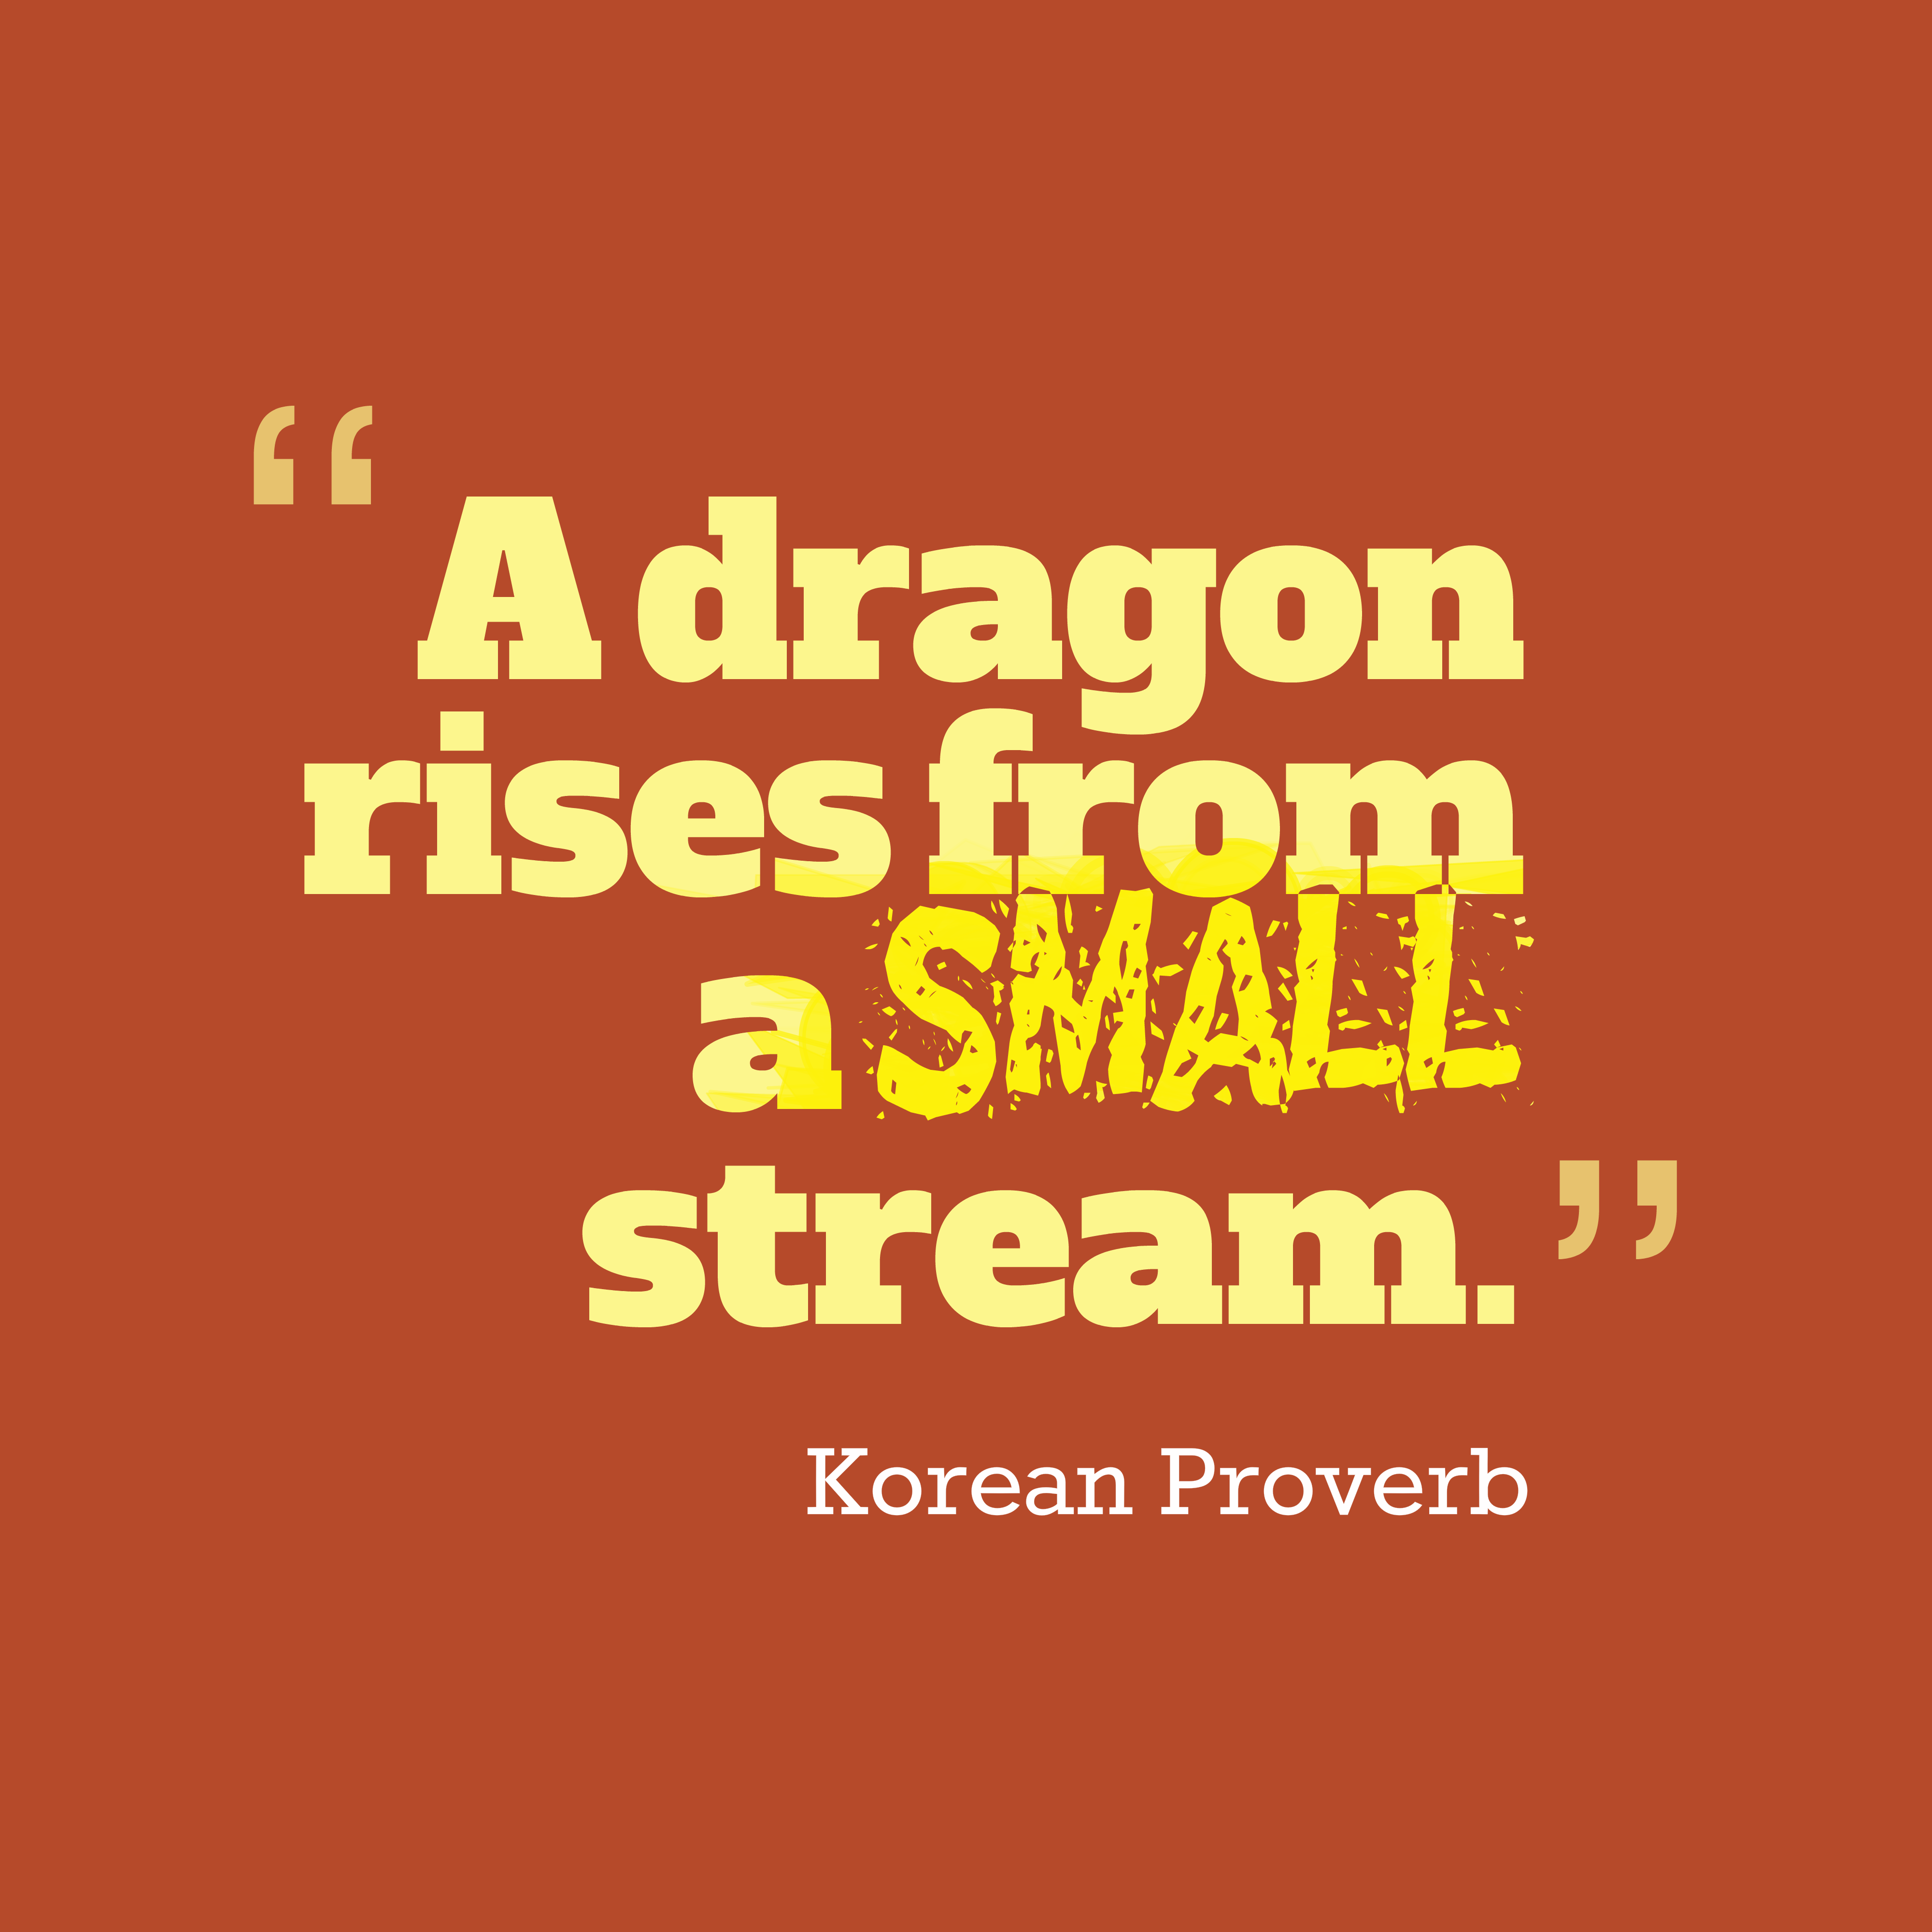 Quotes image of A dragon rises from a small stream.